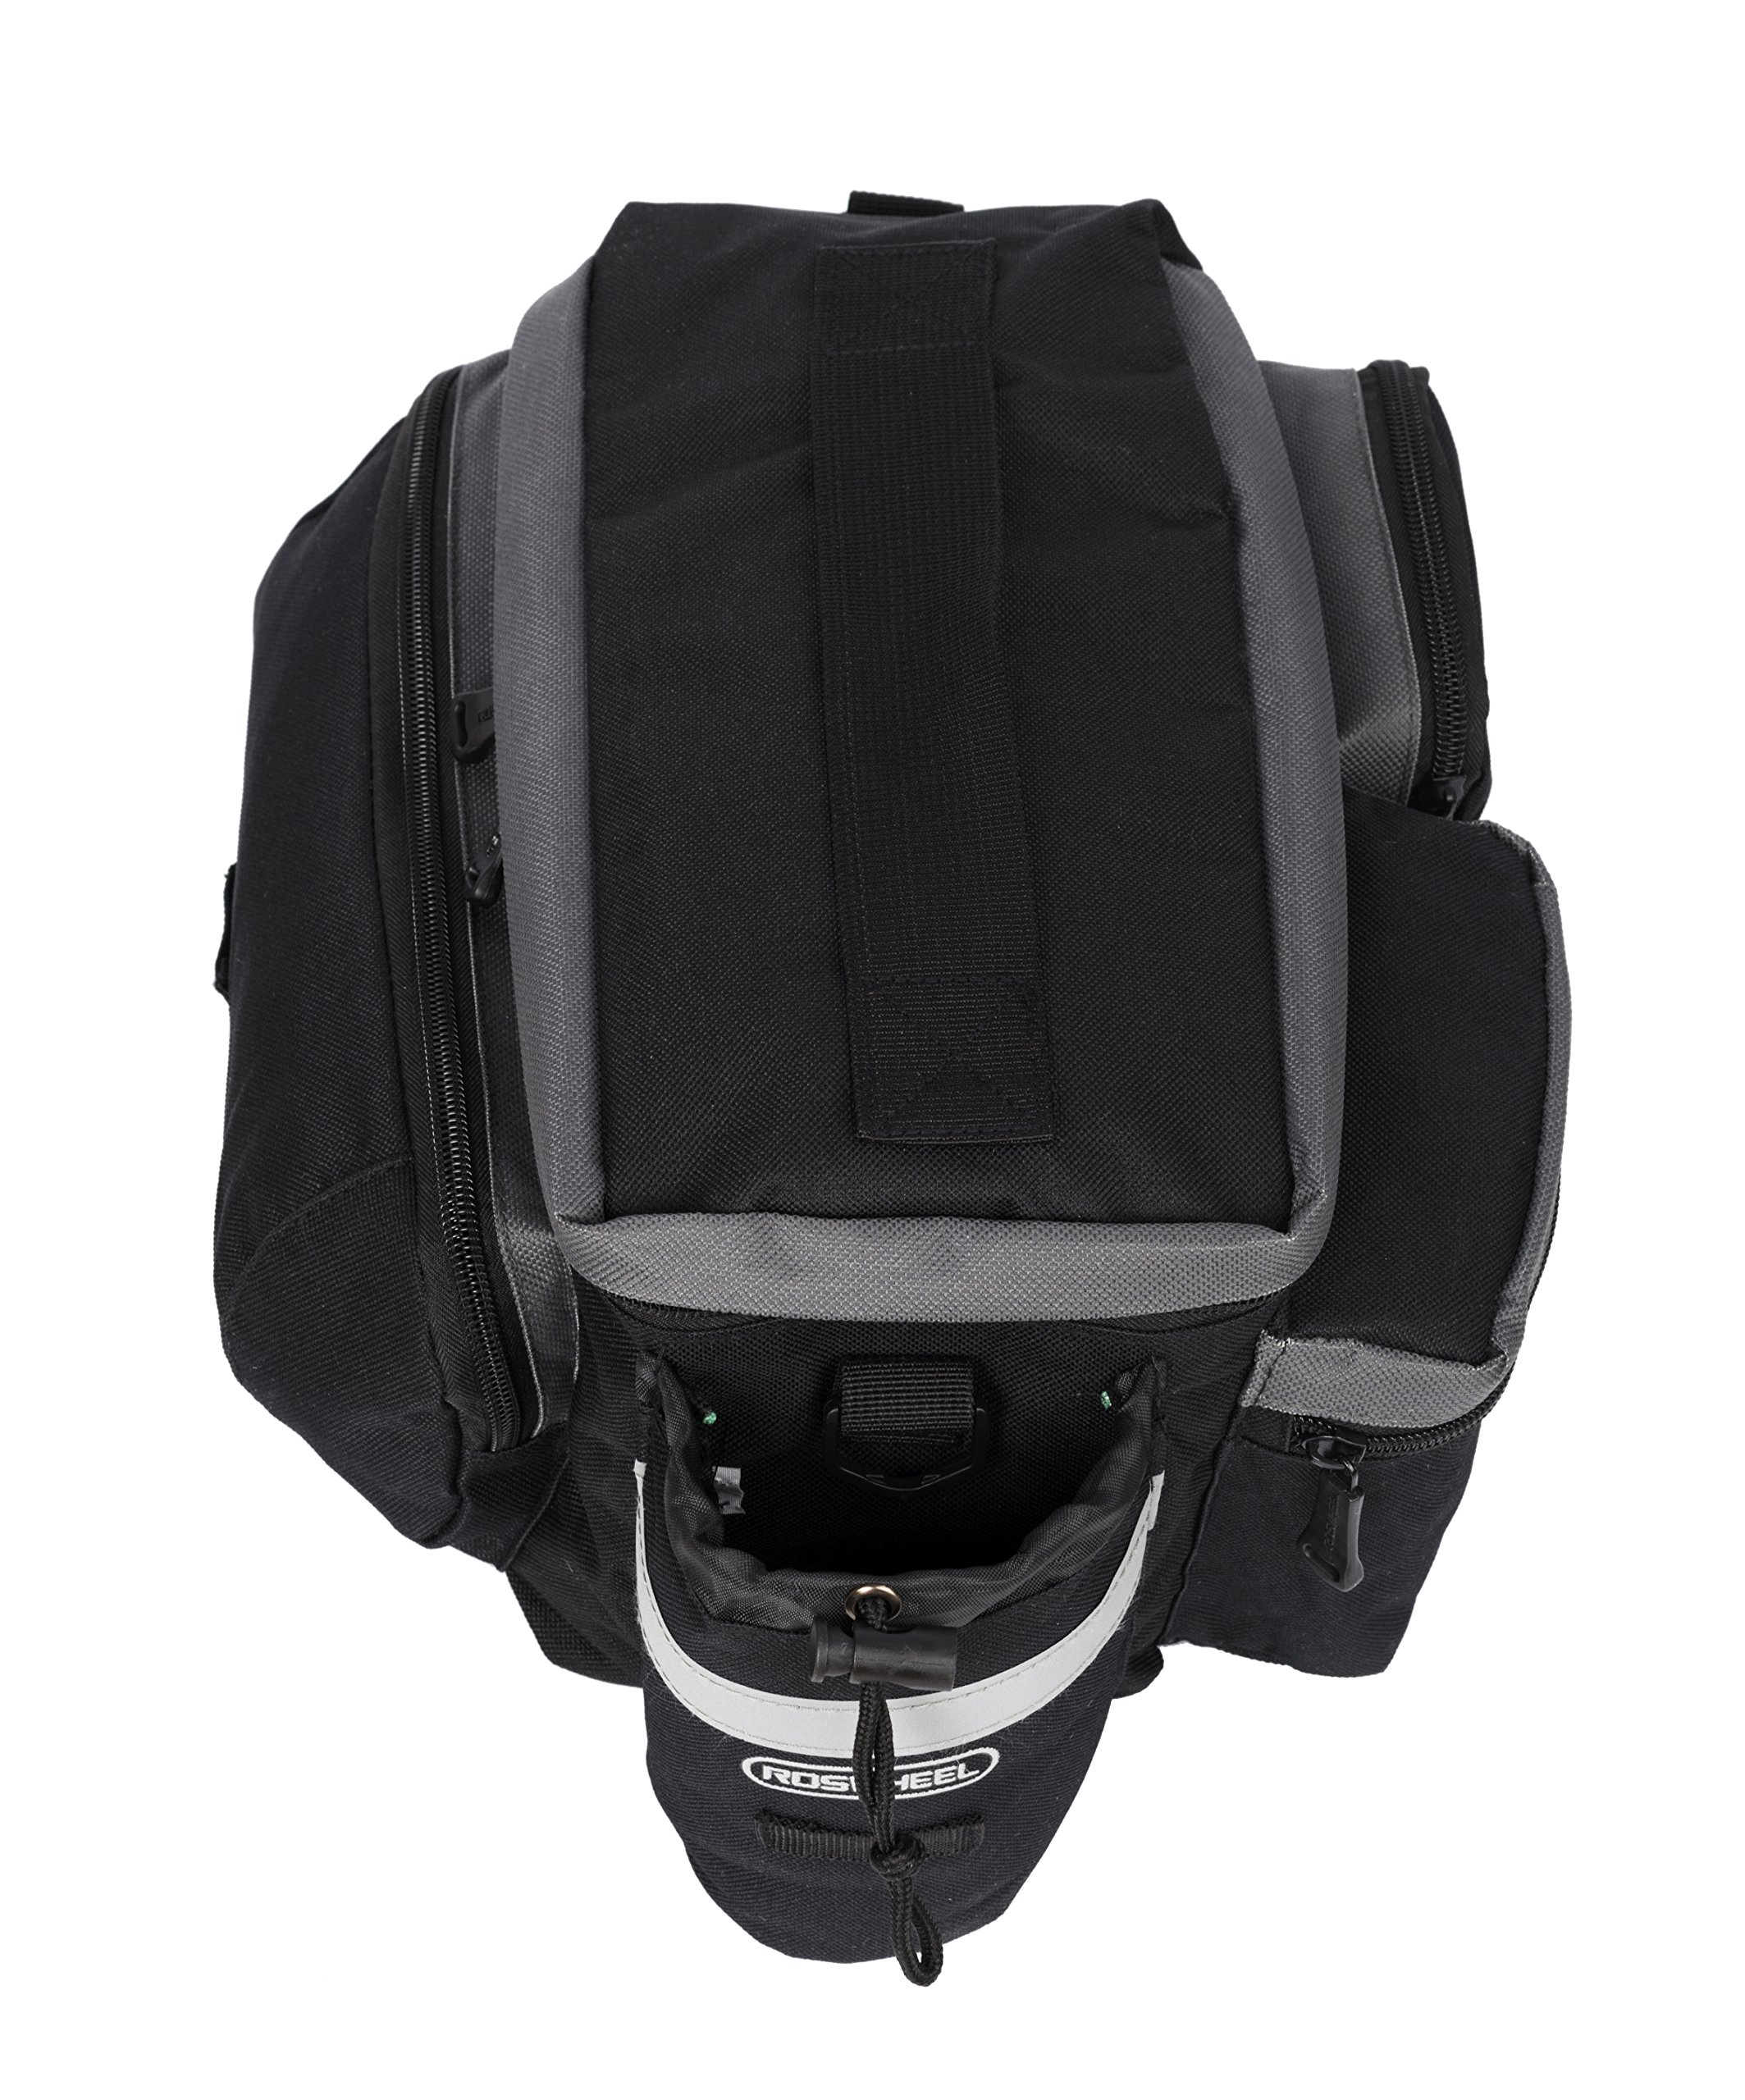 Roswheel 14024 Convertible Bike Bicycle Rear Rack Seat Pannier Trunk Bag with Cup Holder by Roswheel (Image #4)